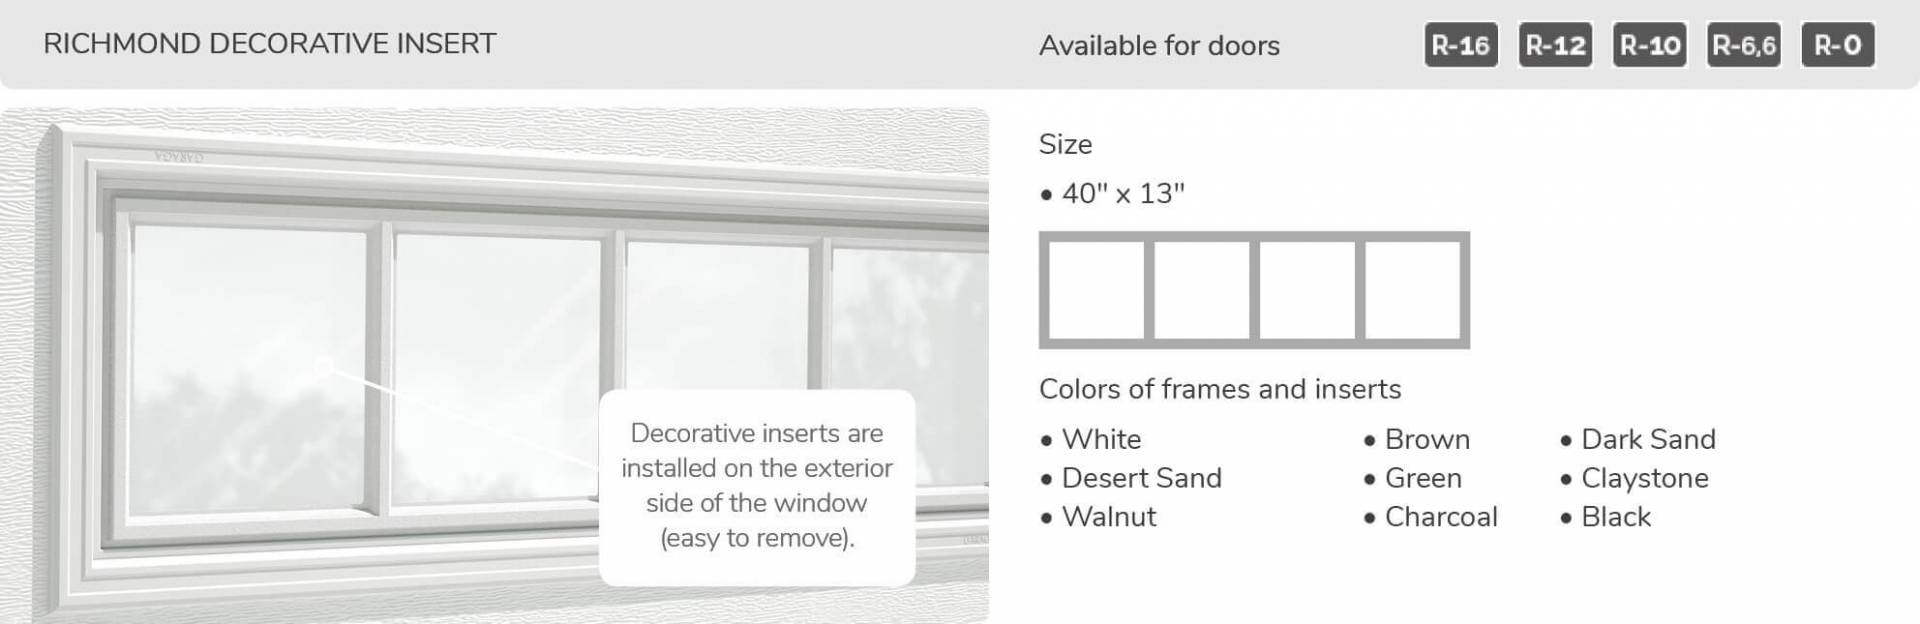 "Richmond Decorative Insert, 40"" x 13"", available for doors R-16, R-12, R-10, R-6.6, R-0"